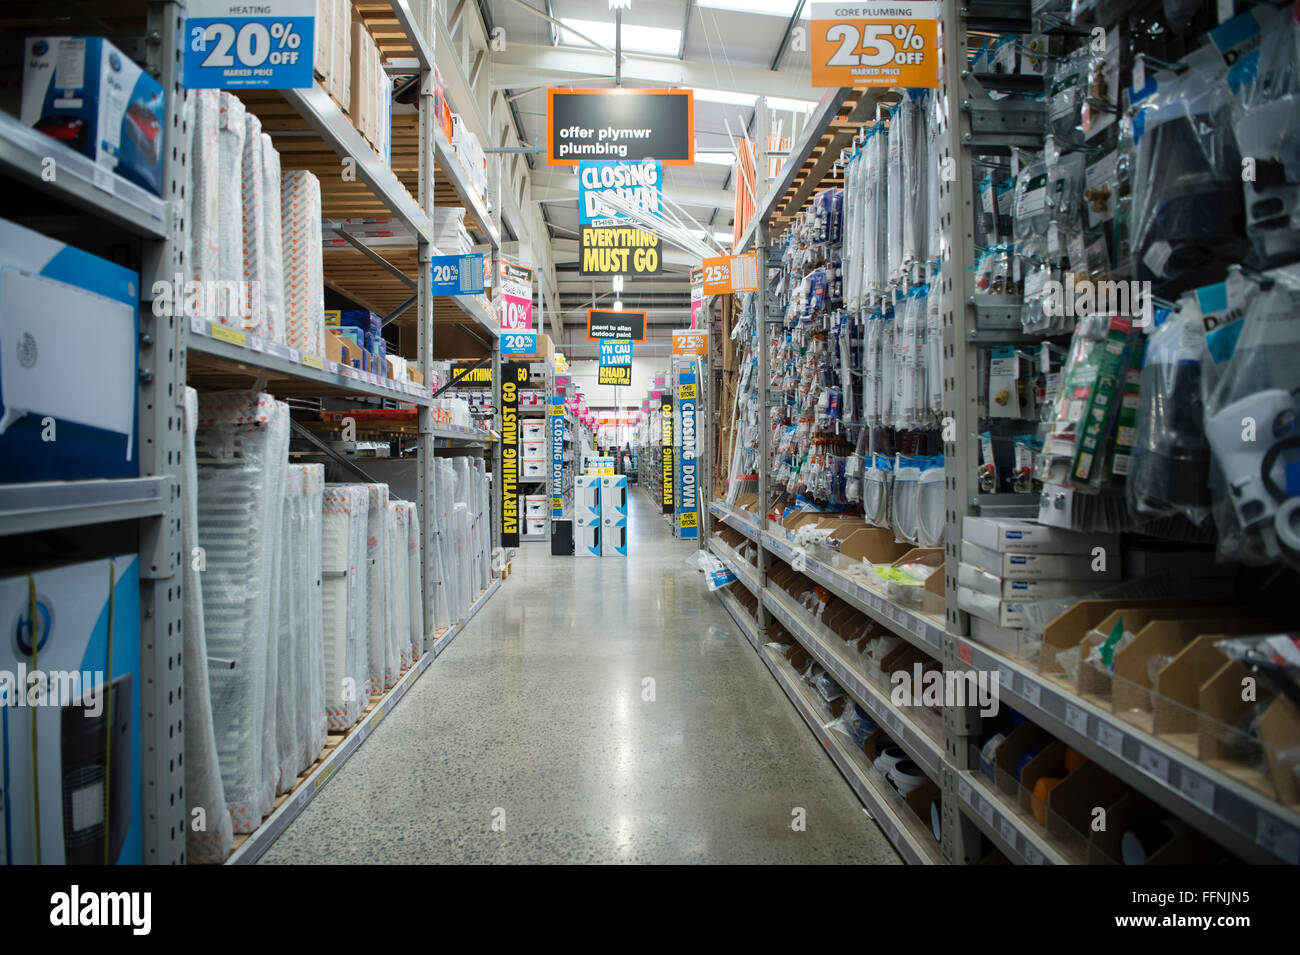 Do it yourself shop stock photos do it yourself shop stock images inside a branch of bq b and q diy do it yourself solutioingenieria Gallery